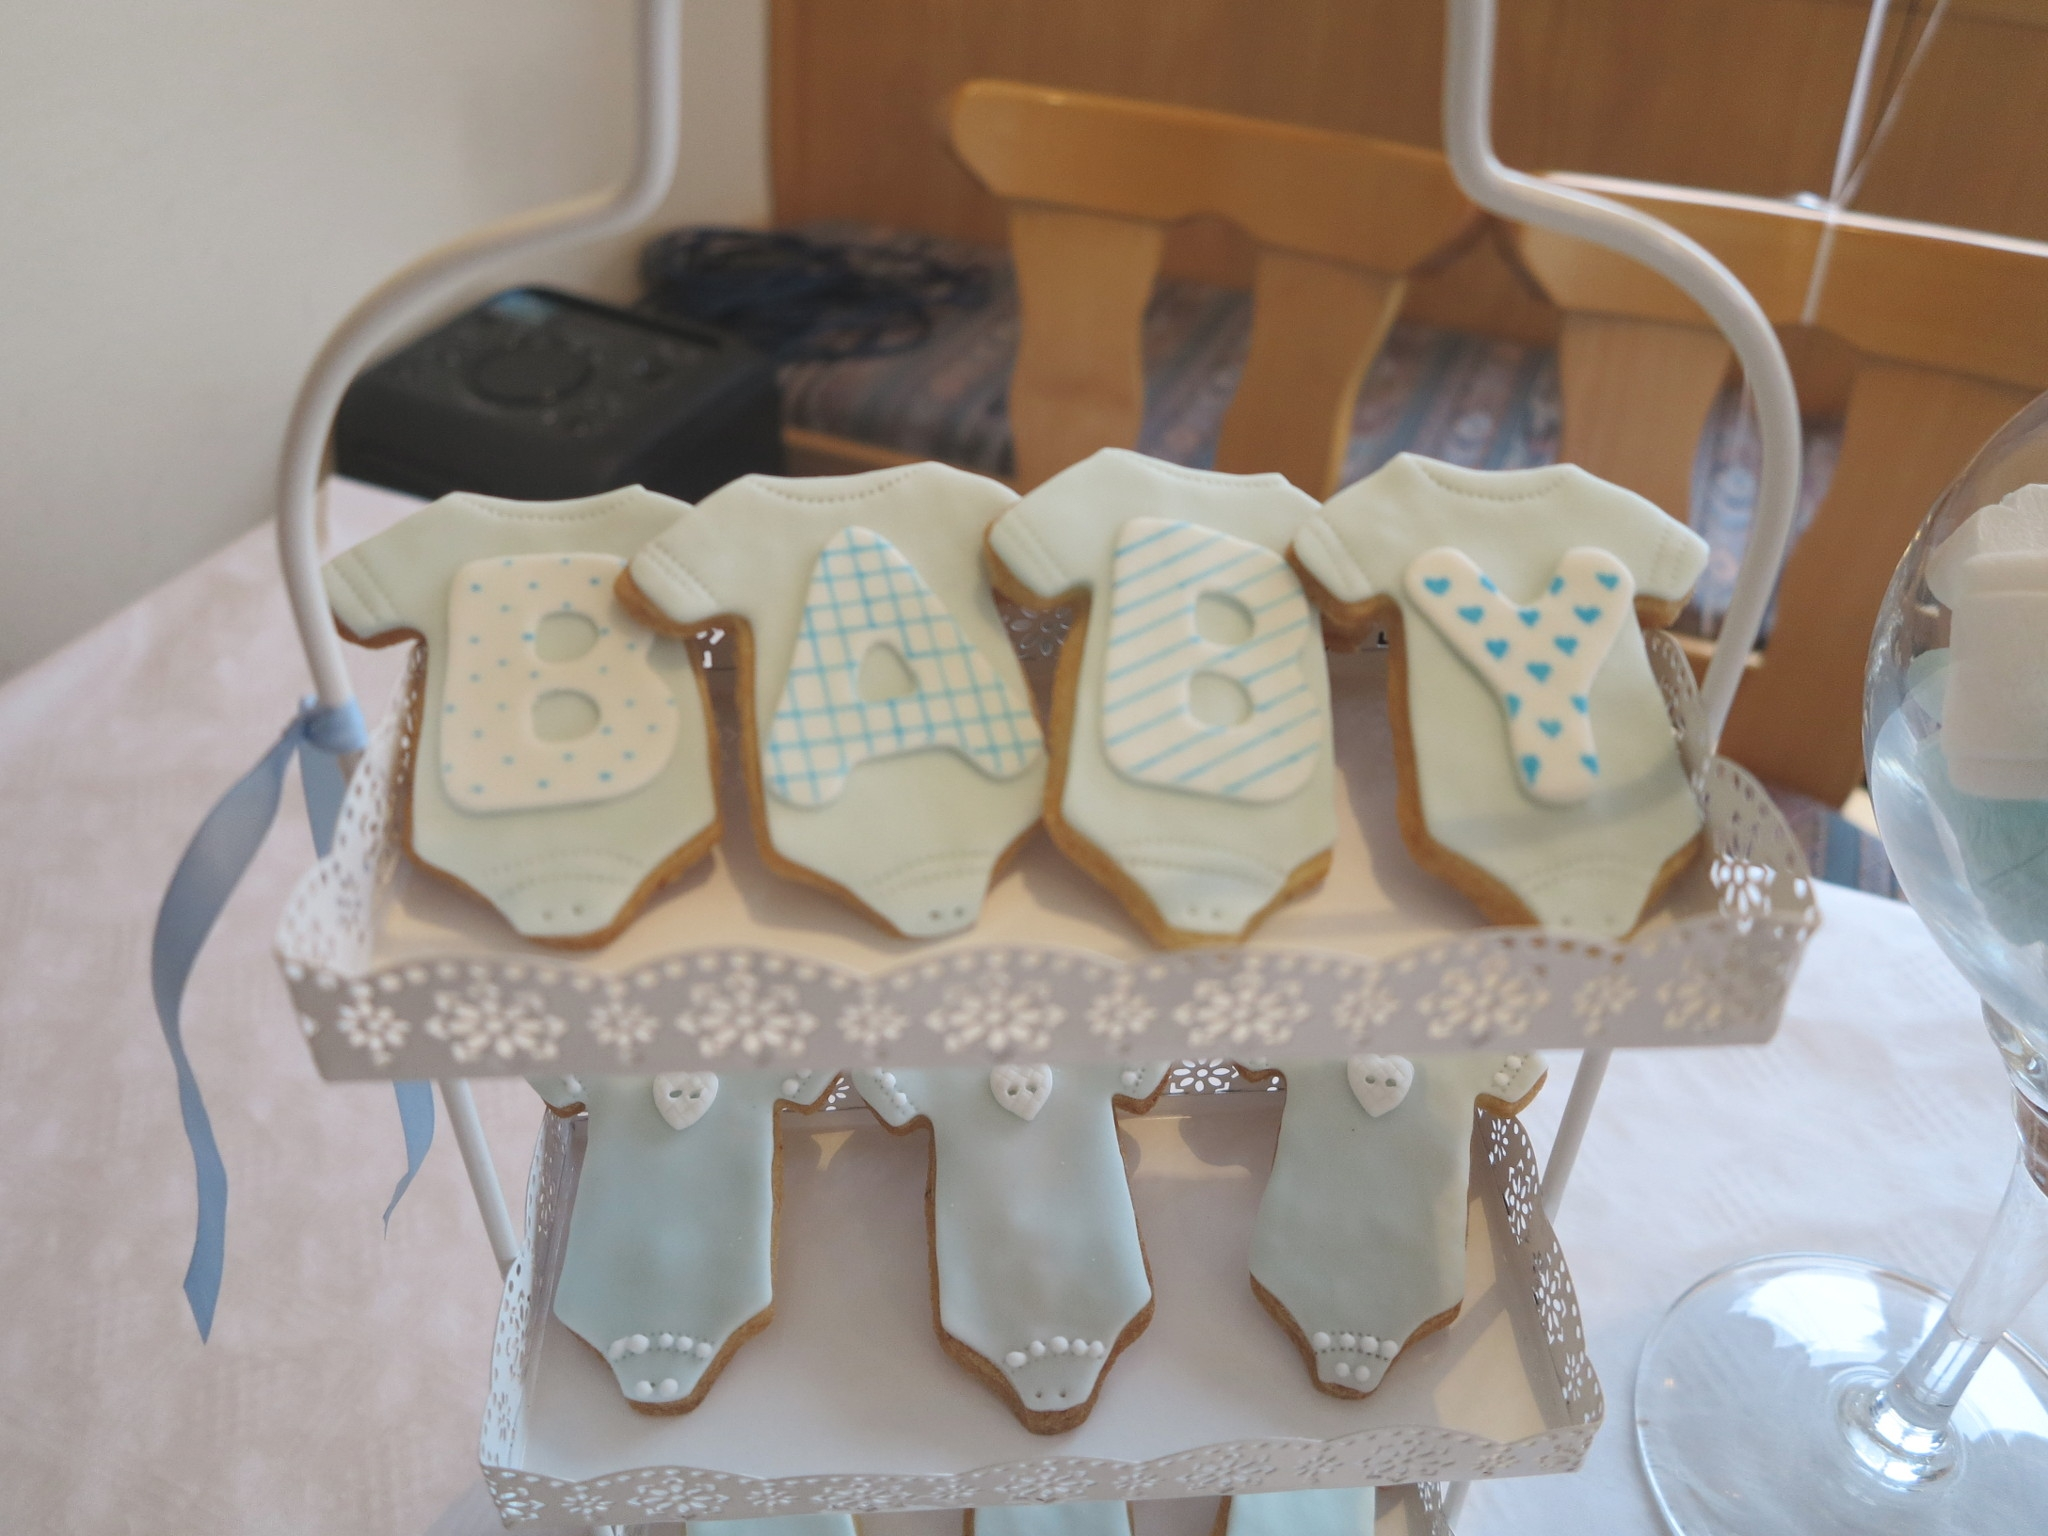 Candytable Babyparty6